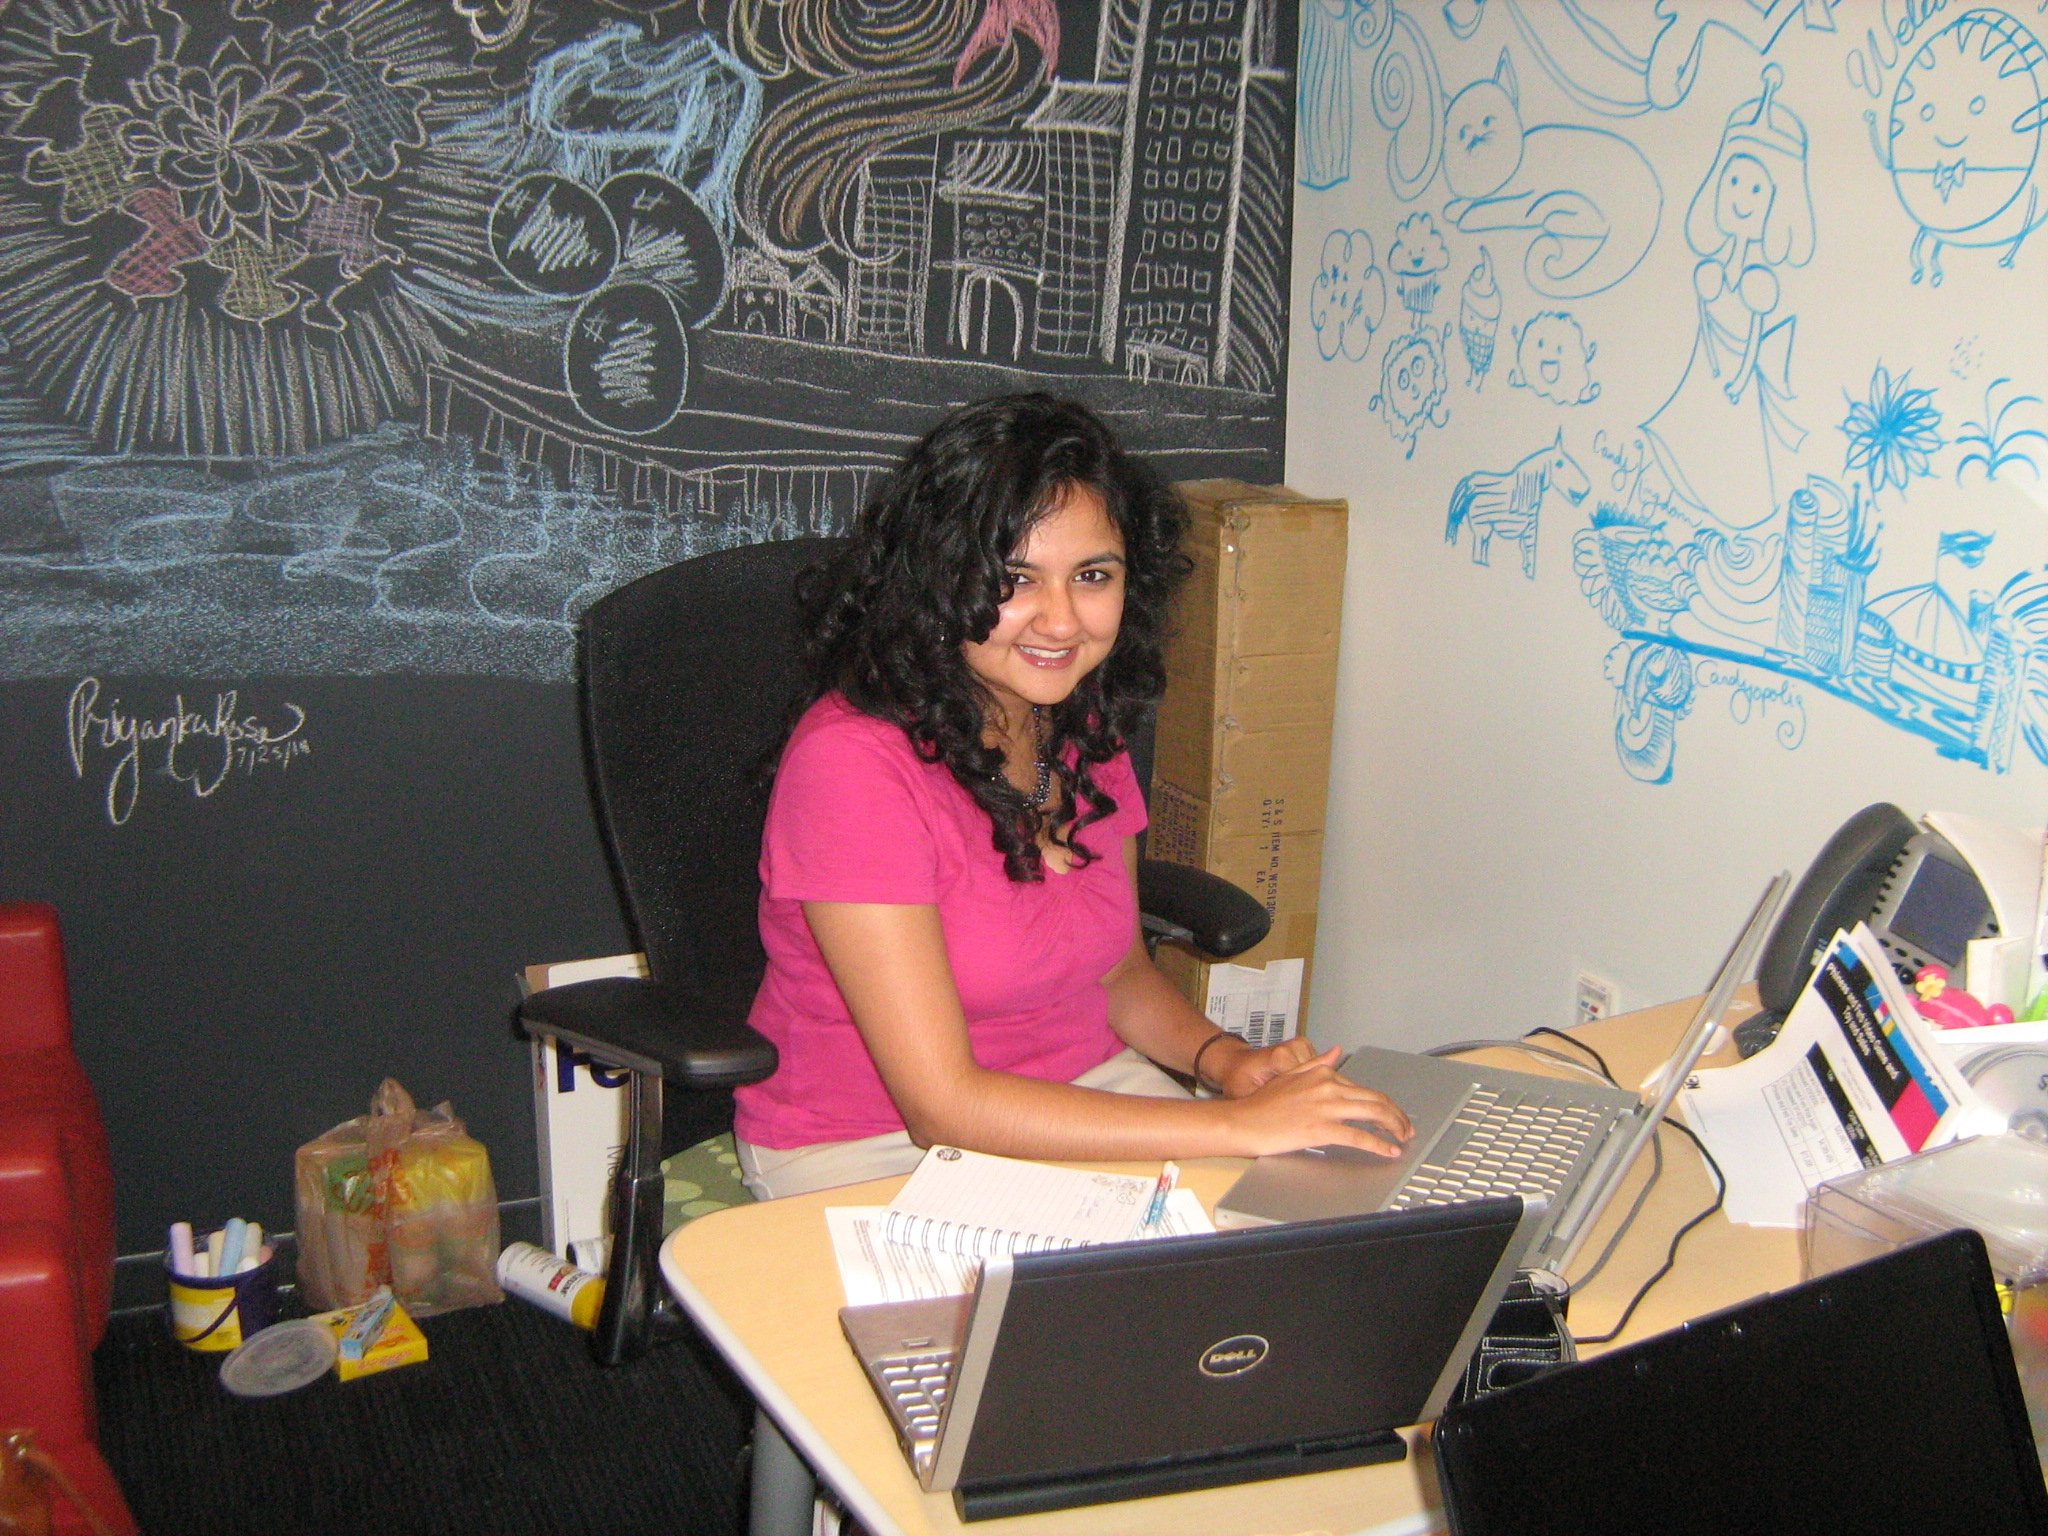 Me hard at work in my intern office at Cartoon Network! Behind me is a whiteboard wall and a chalkboard wall. All doodles are mine.